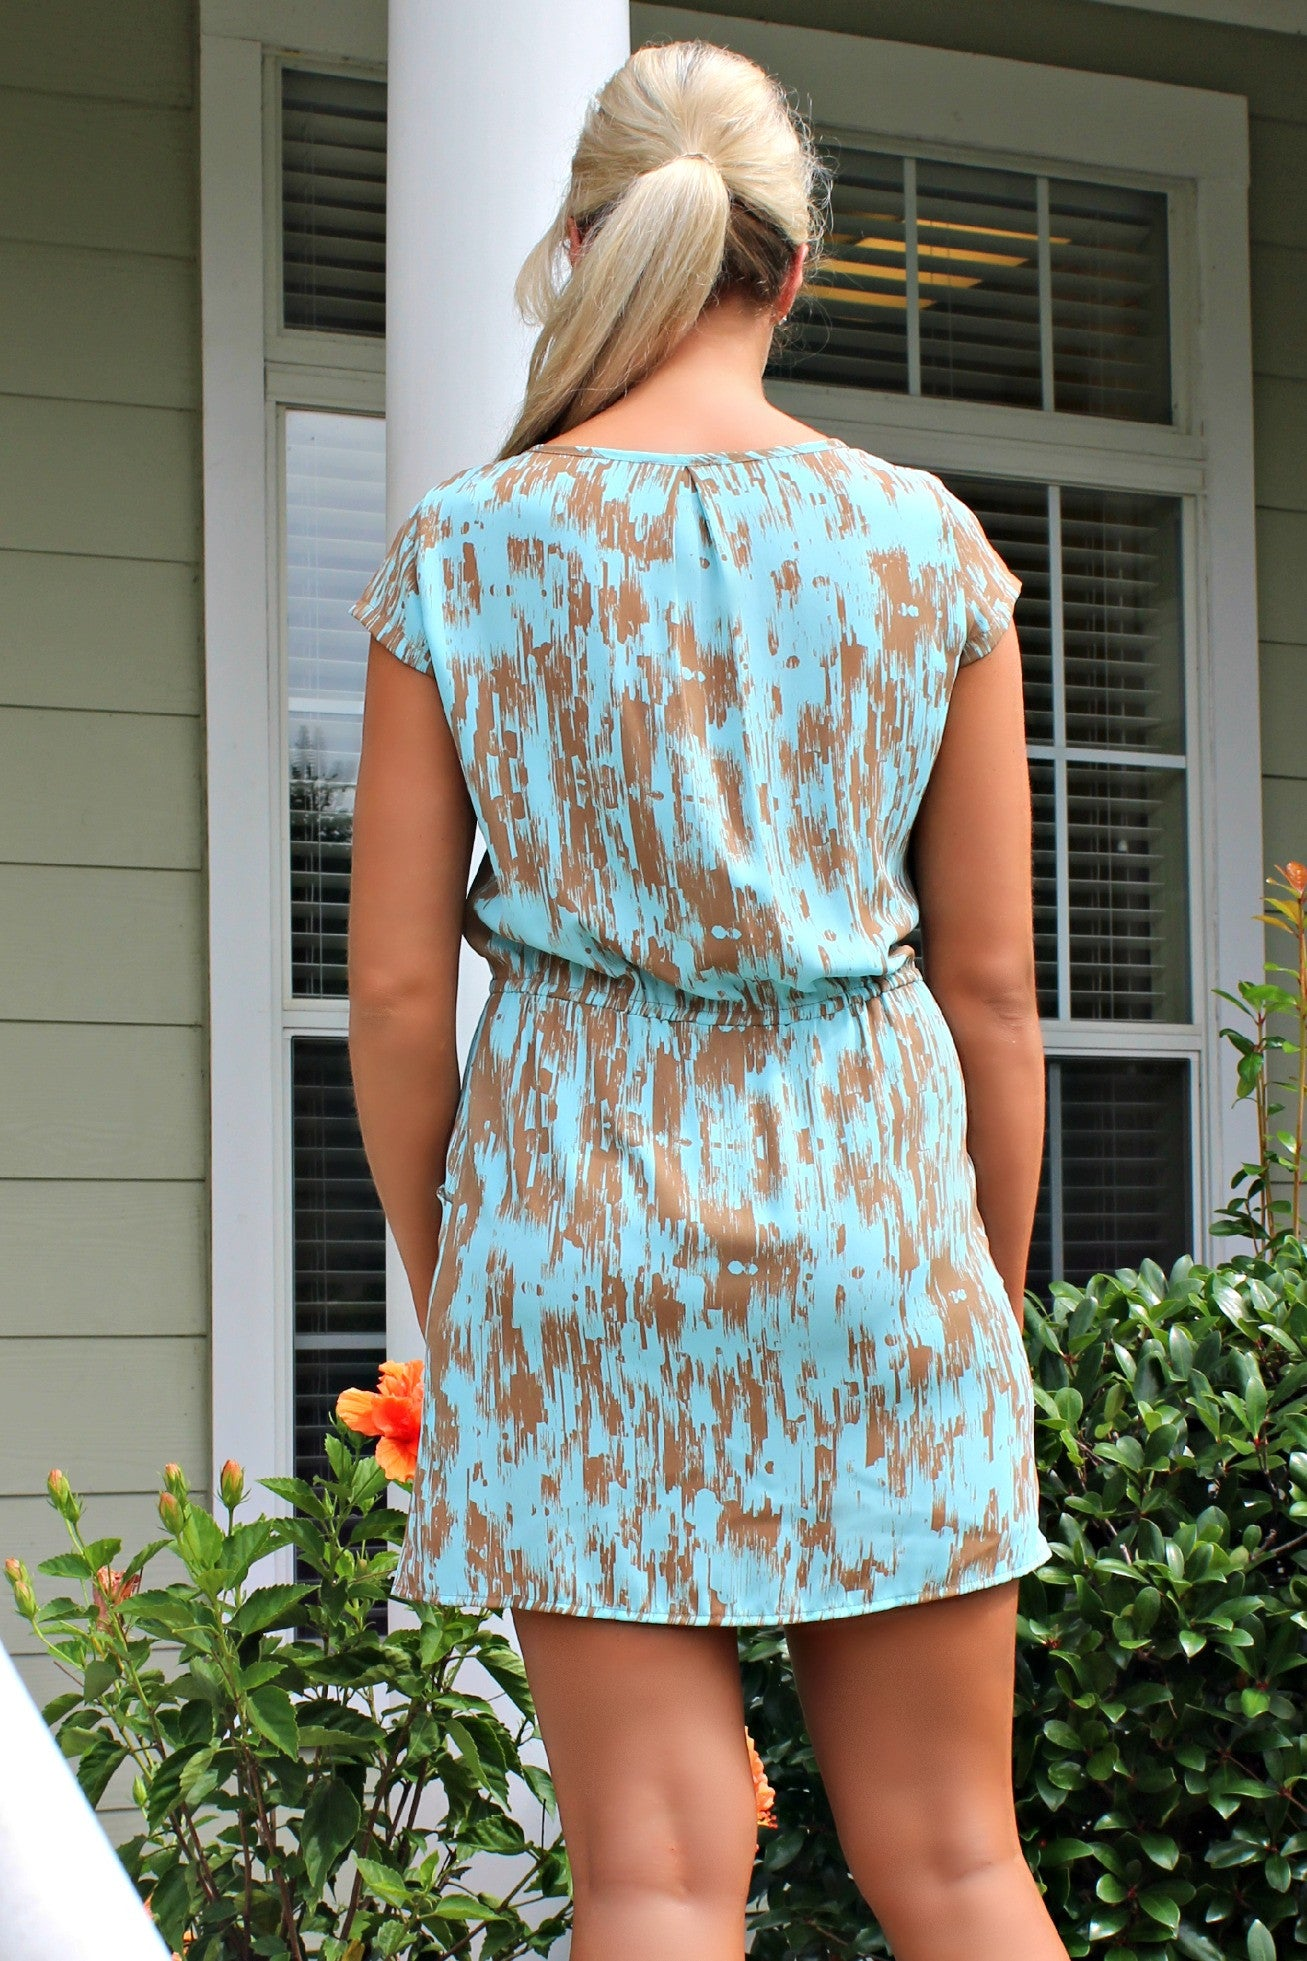 Glam: Karissa Dress, Blue